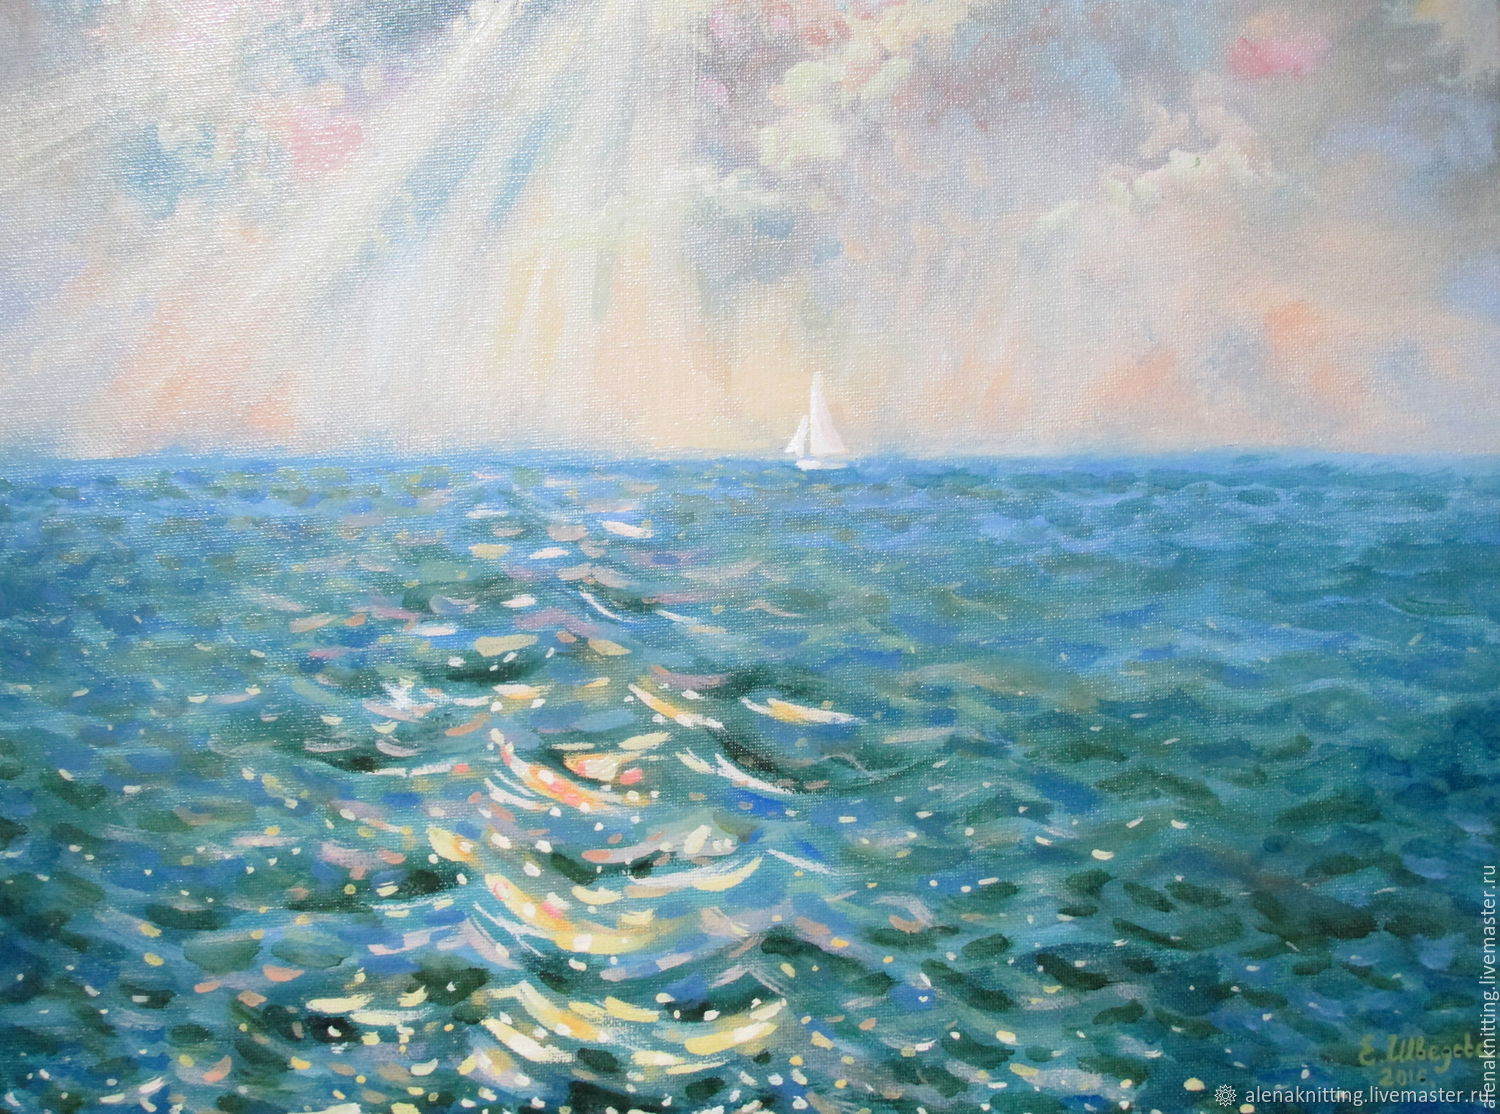 Oil painting 'the White sail', Pictures, Moscow,  Фото №1